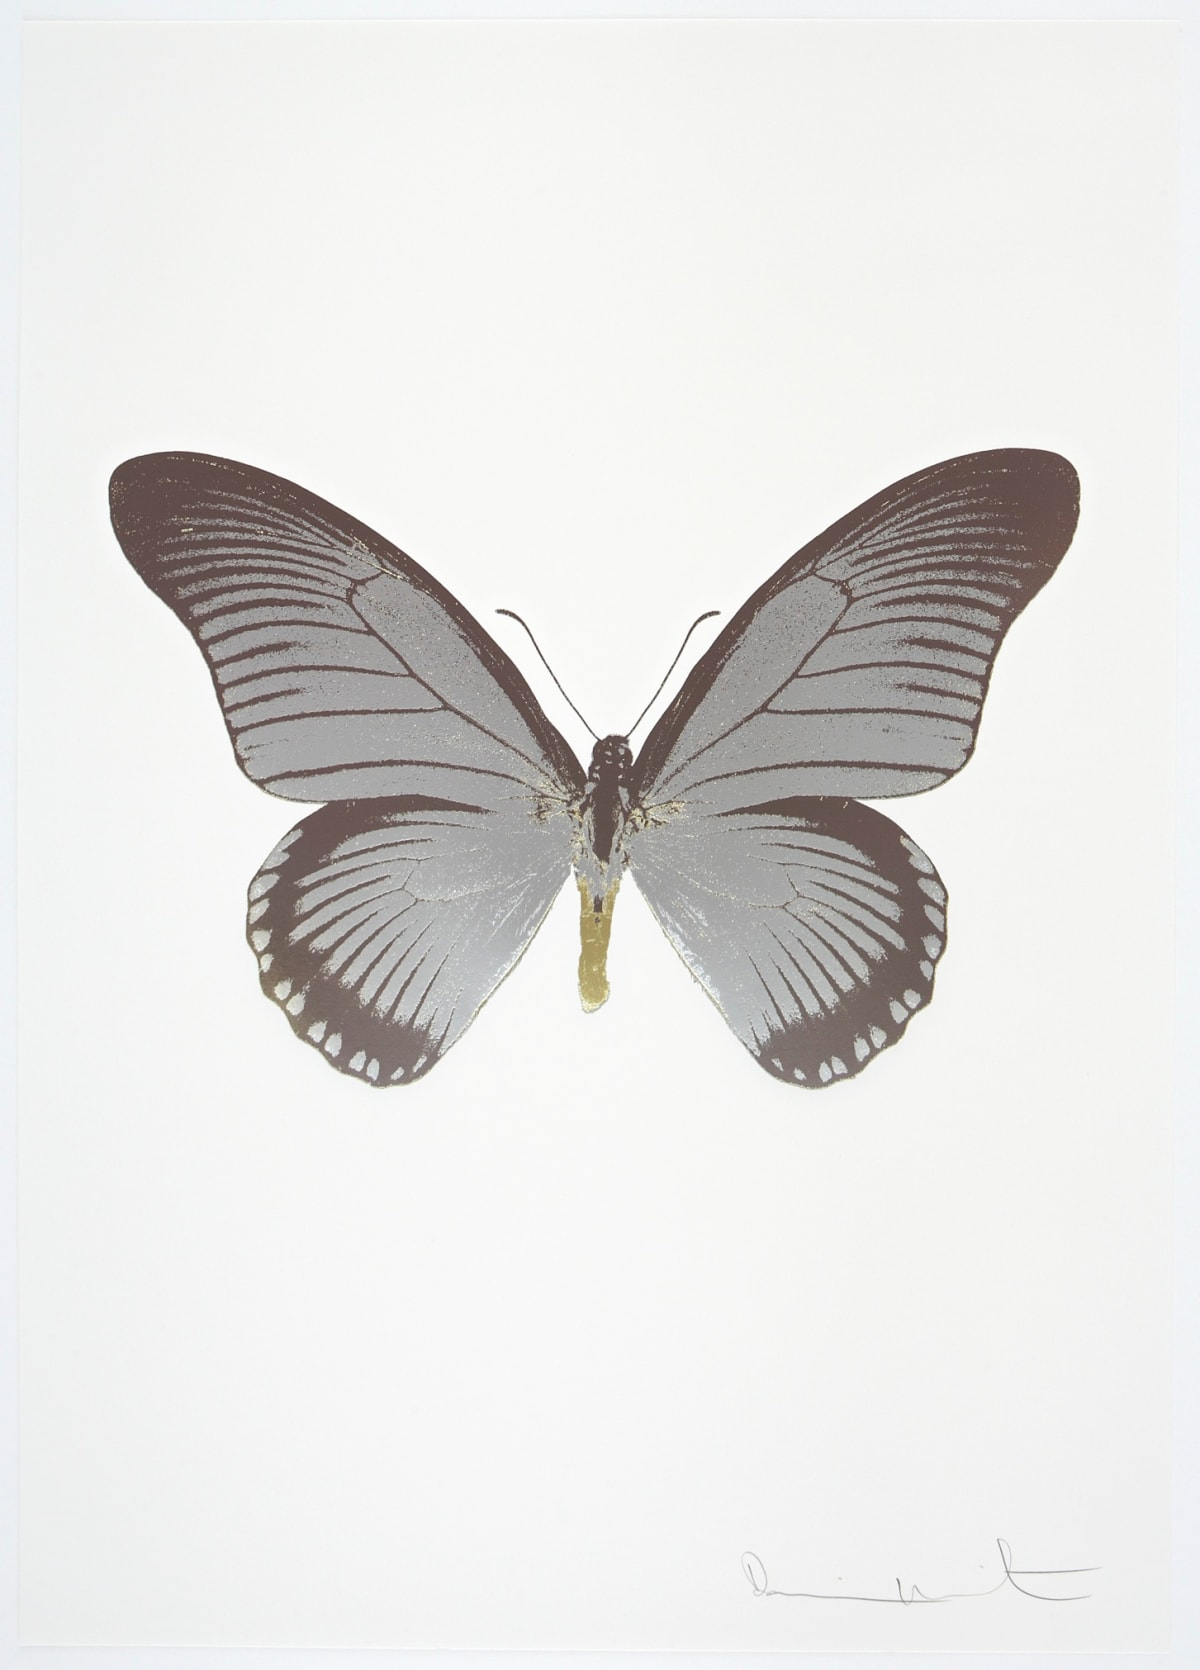 Damien Hirst The Souls IV - Silver Gloss/Gunmetal/Cool Gold, 2010 3 colour foil block on 300gsm Arches 88 archival paper. Signed and numbered. Published by Paul Stolper and Other Criteria 72 x 51cm OC7981 / 1418-4 Edition of 15